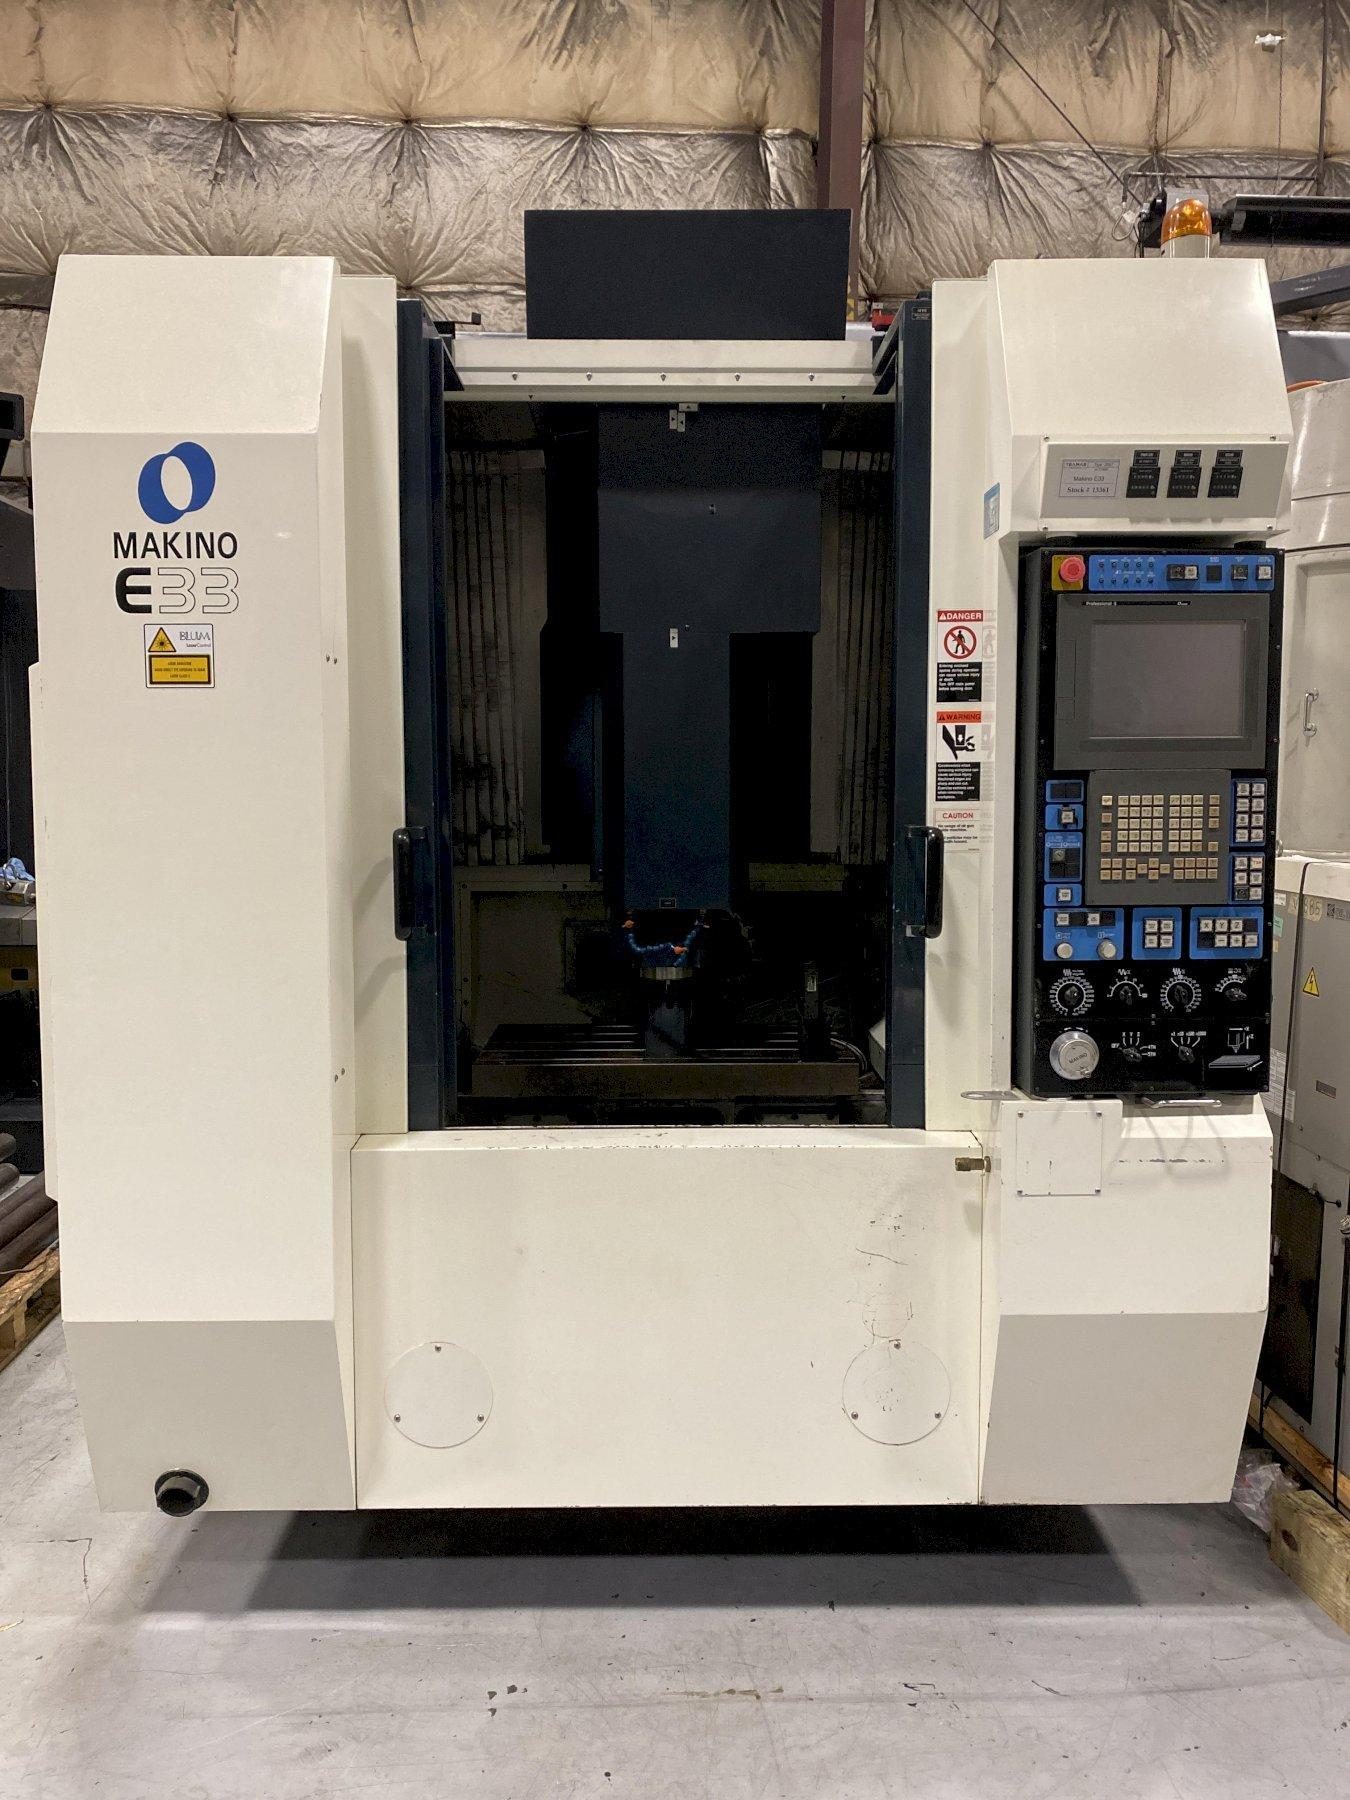 Makino E33 CNC Vertical Machining Center - 2007